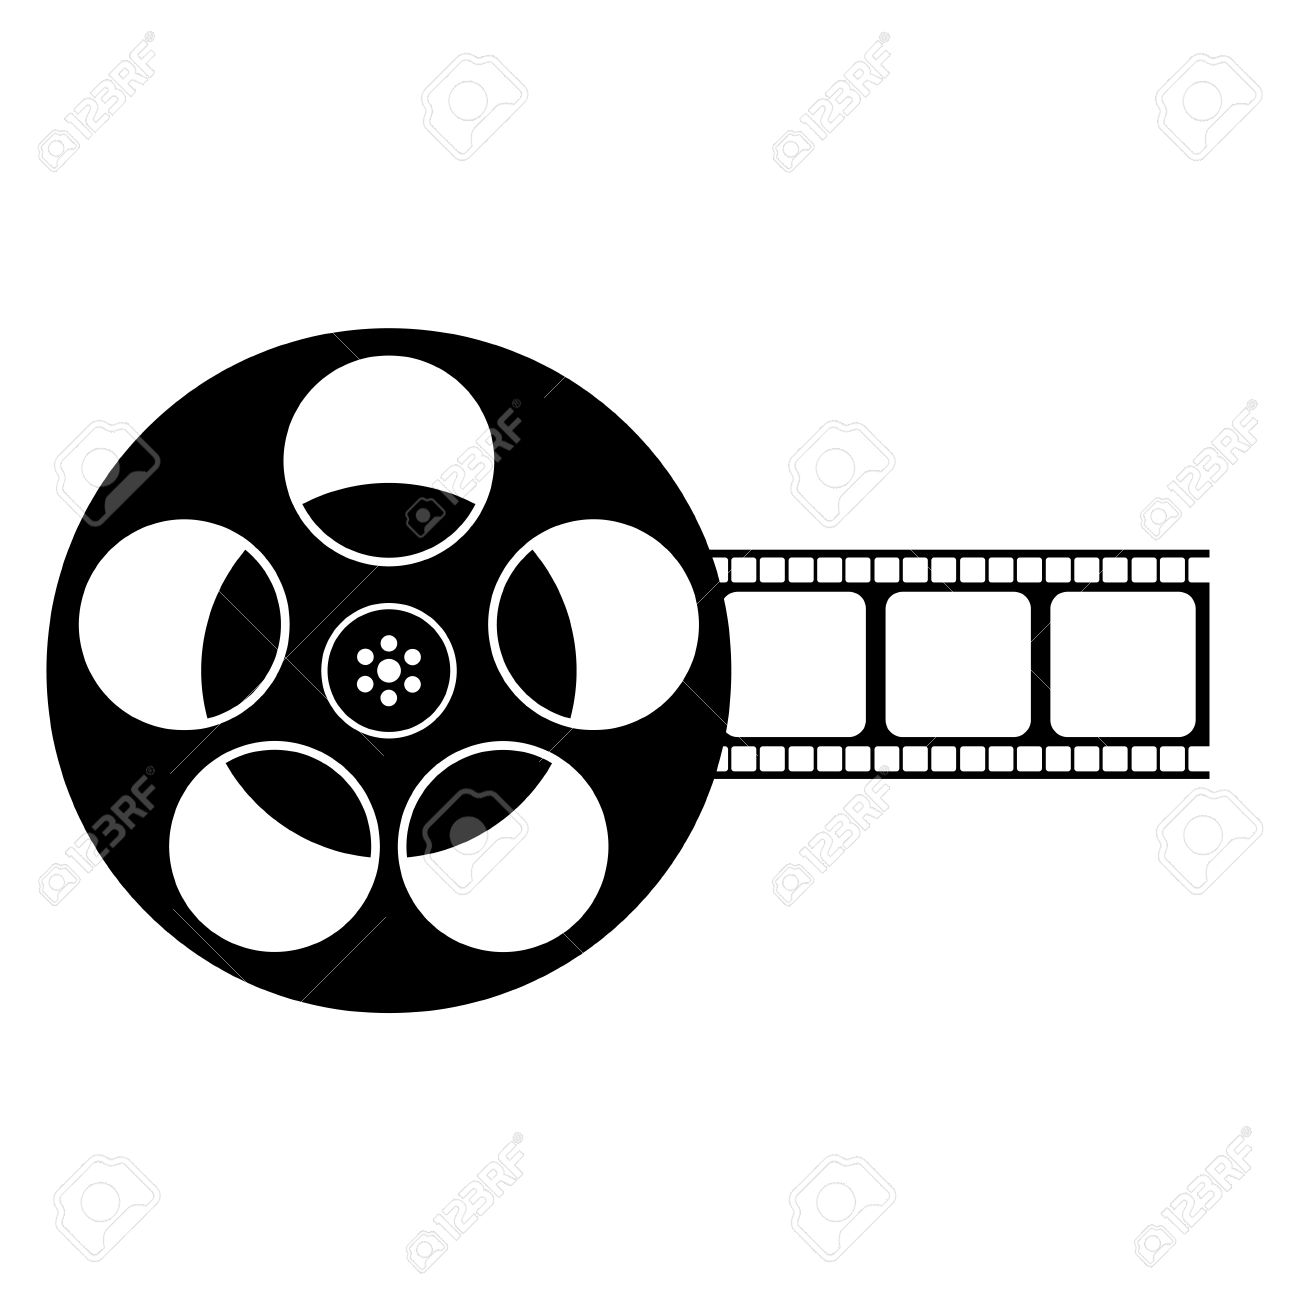 Movie Reel Clipart Black And White.